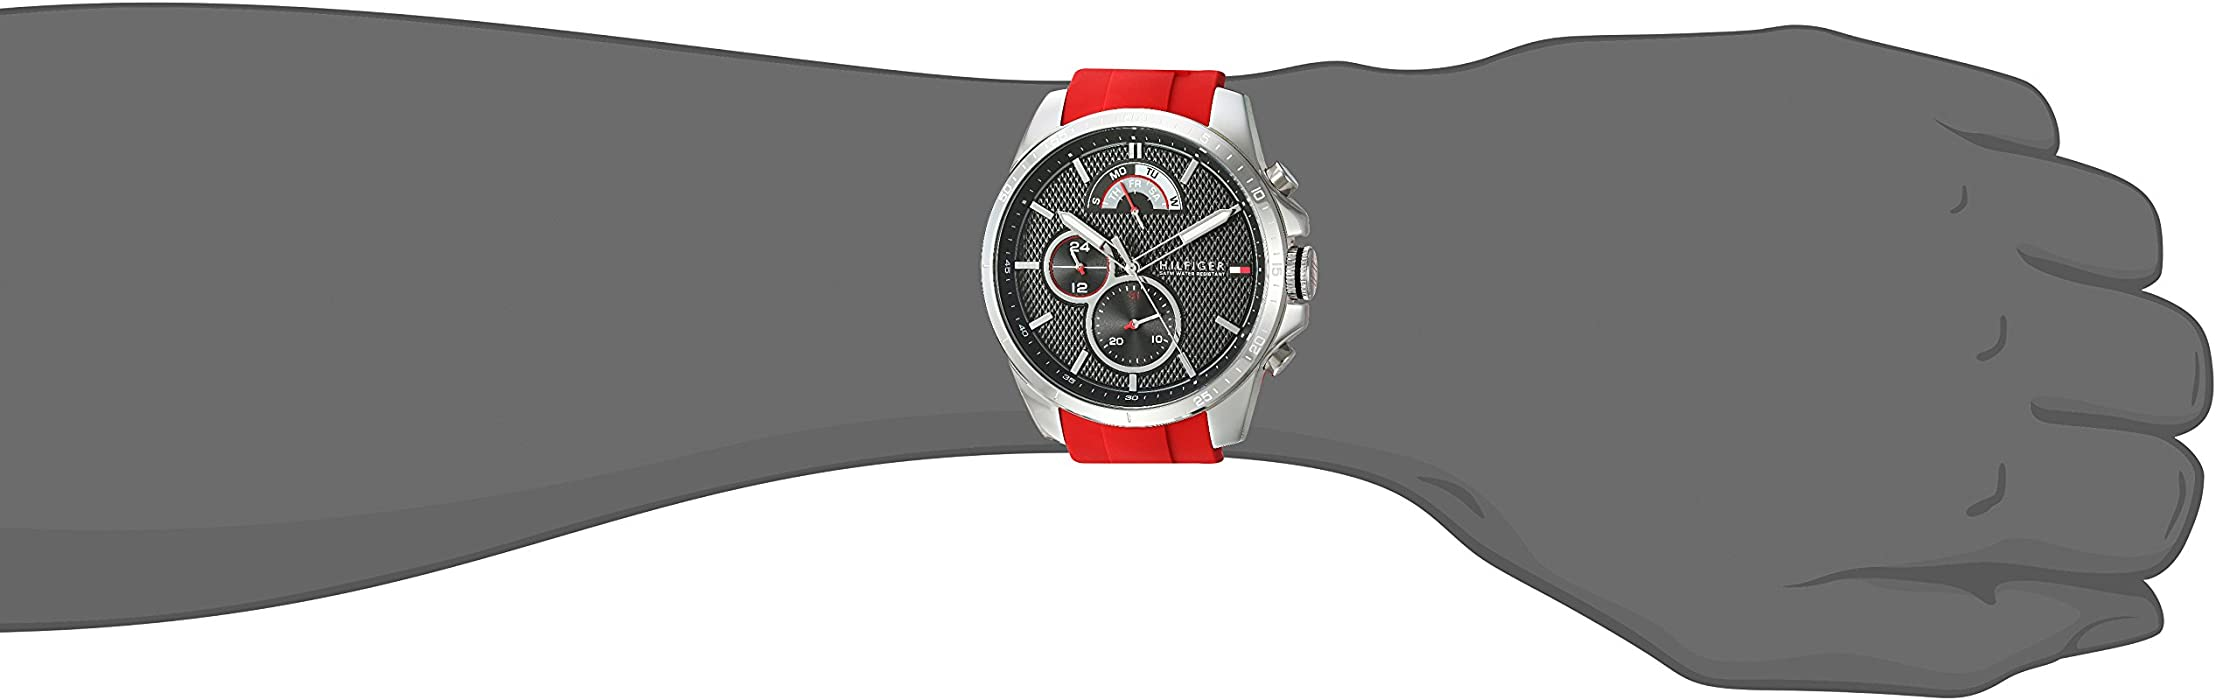 Tommy Hilfiger Men Cool Sport Stainless Steel Quartz Watch with Silicone Strap red 22 Model 1791351